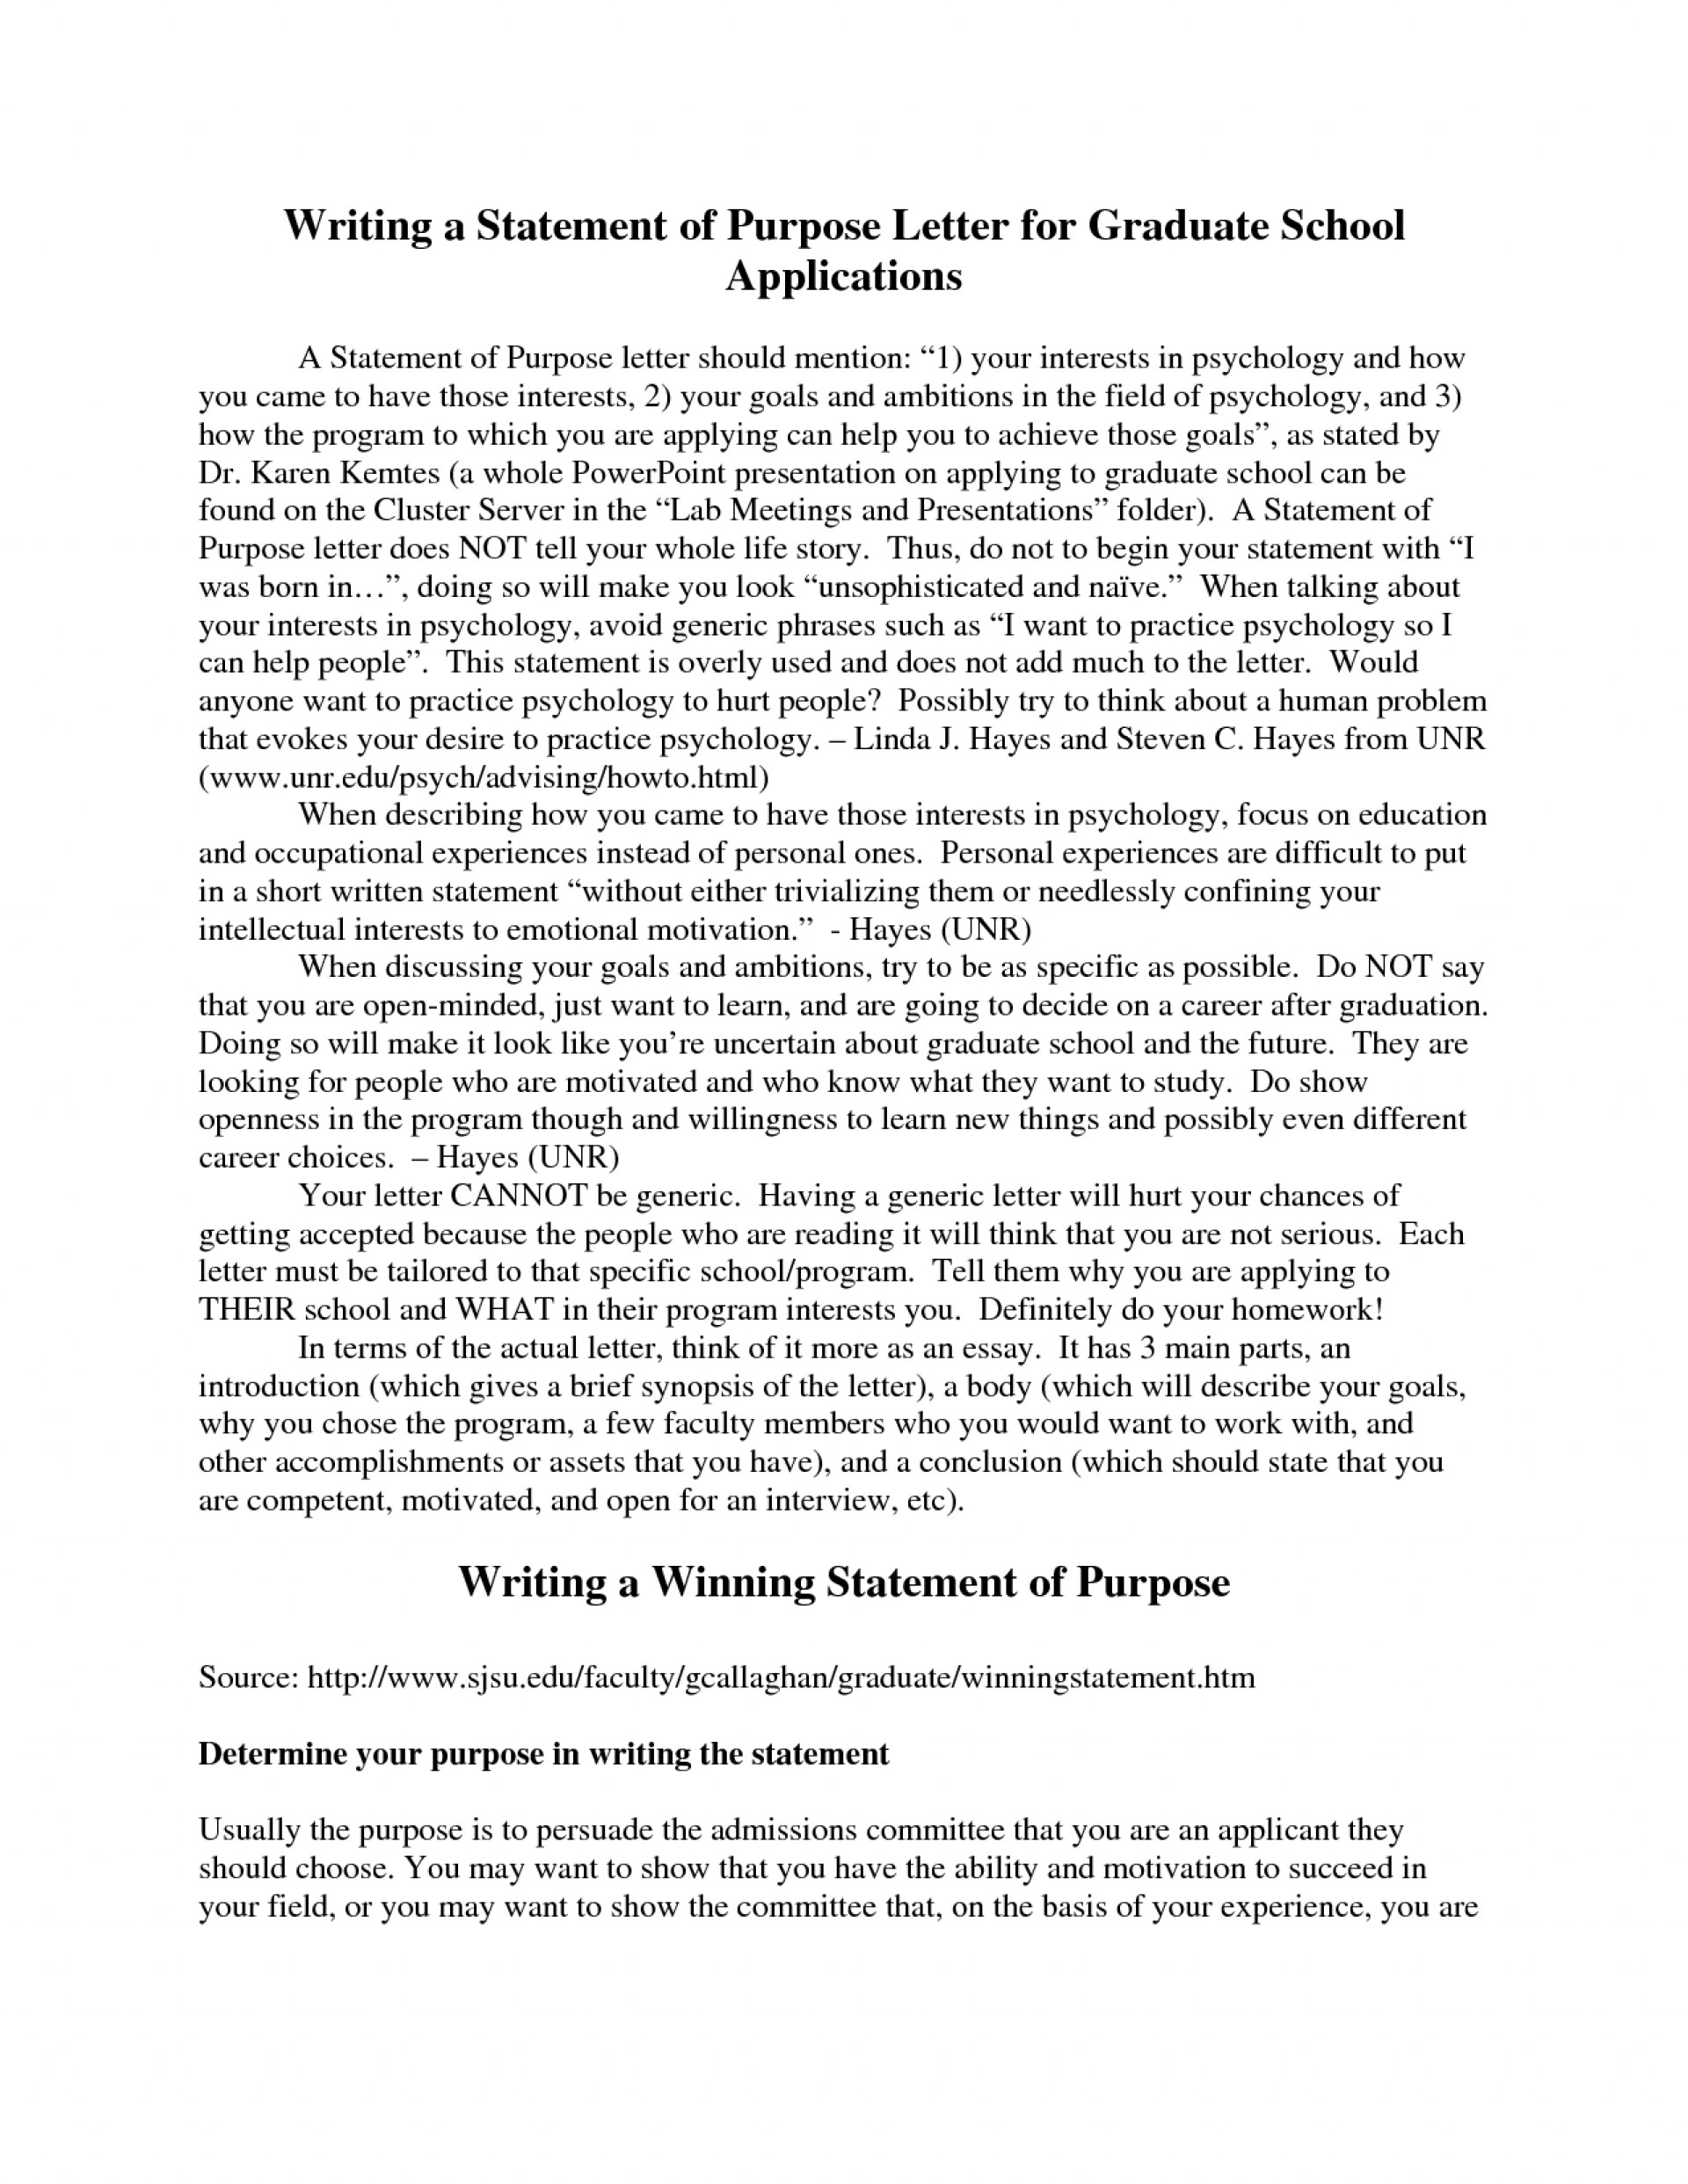 009 Statement Of Purpose Graduate School Sample Essays Personal Essay Examples High College Application Engineering Grad Template Zap Example Speech Pathology Social Top Education 1920